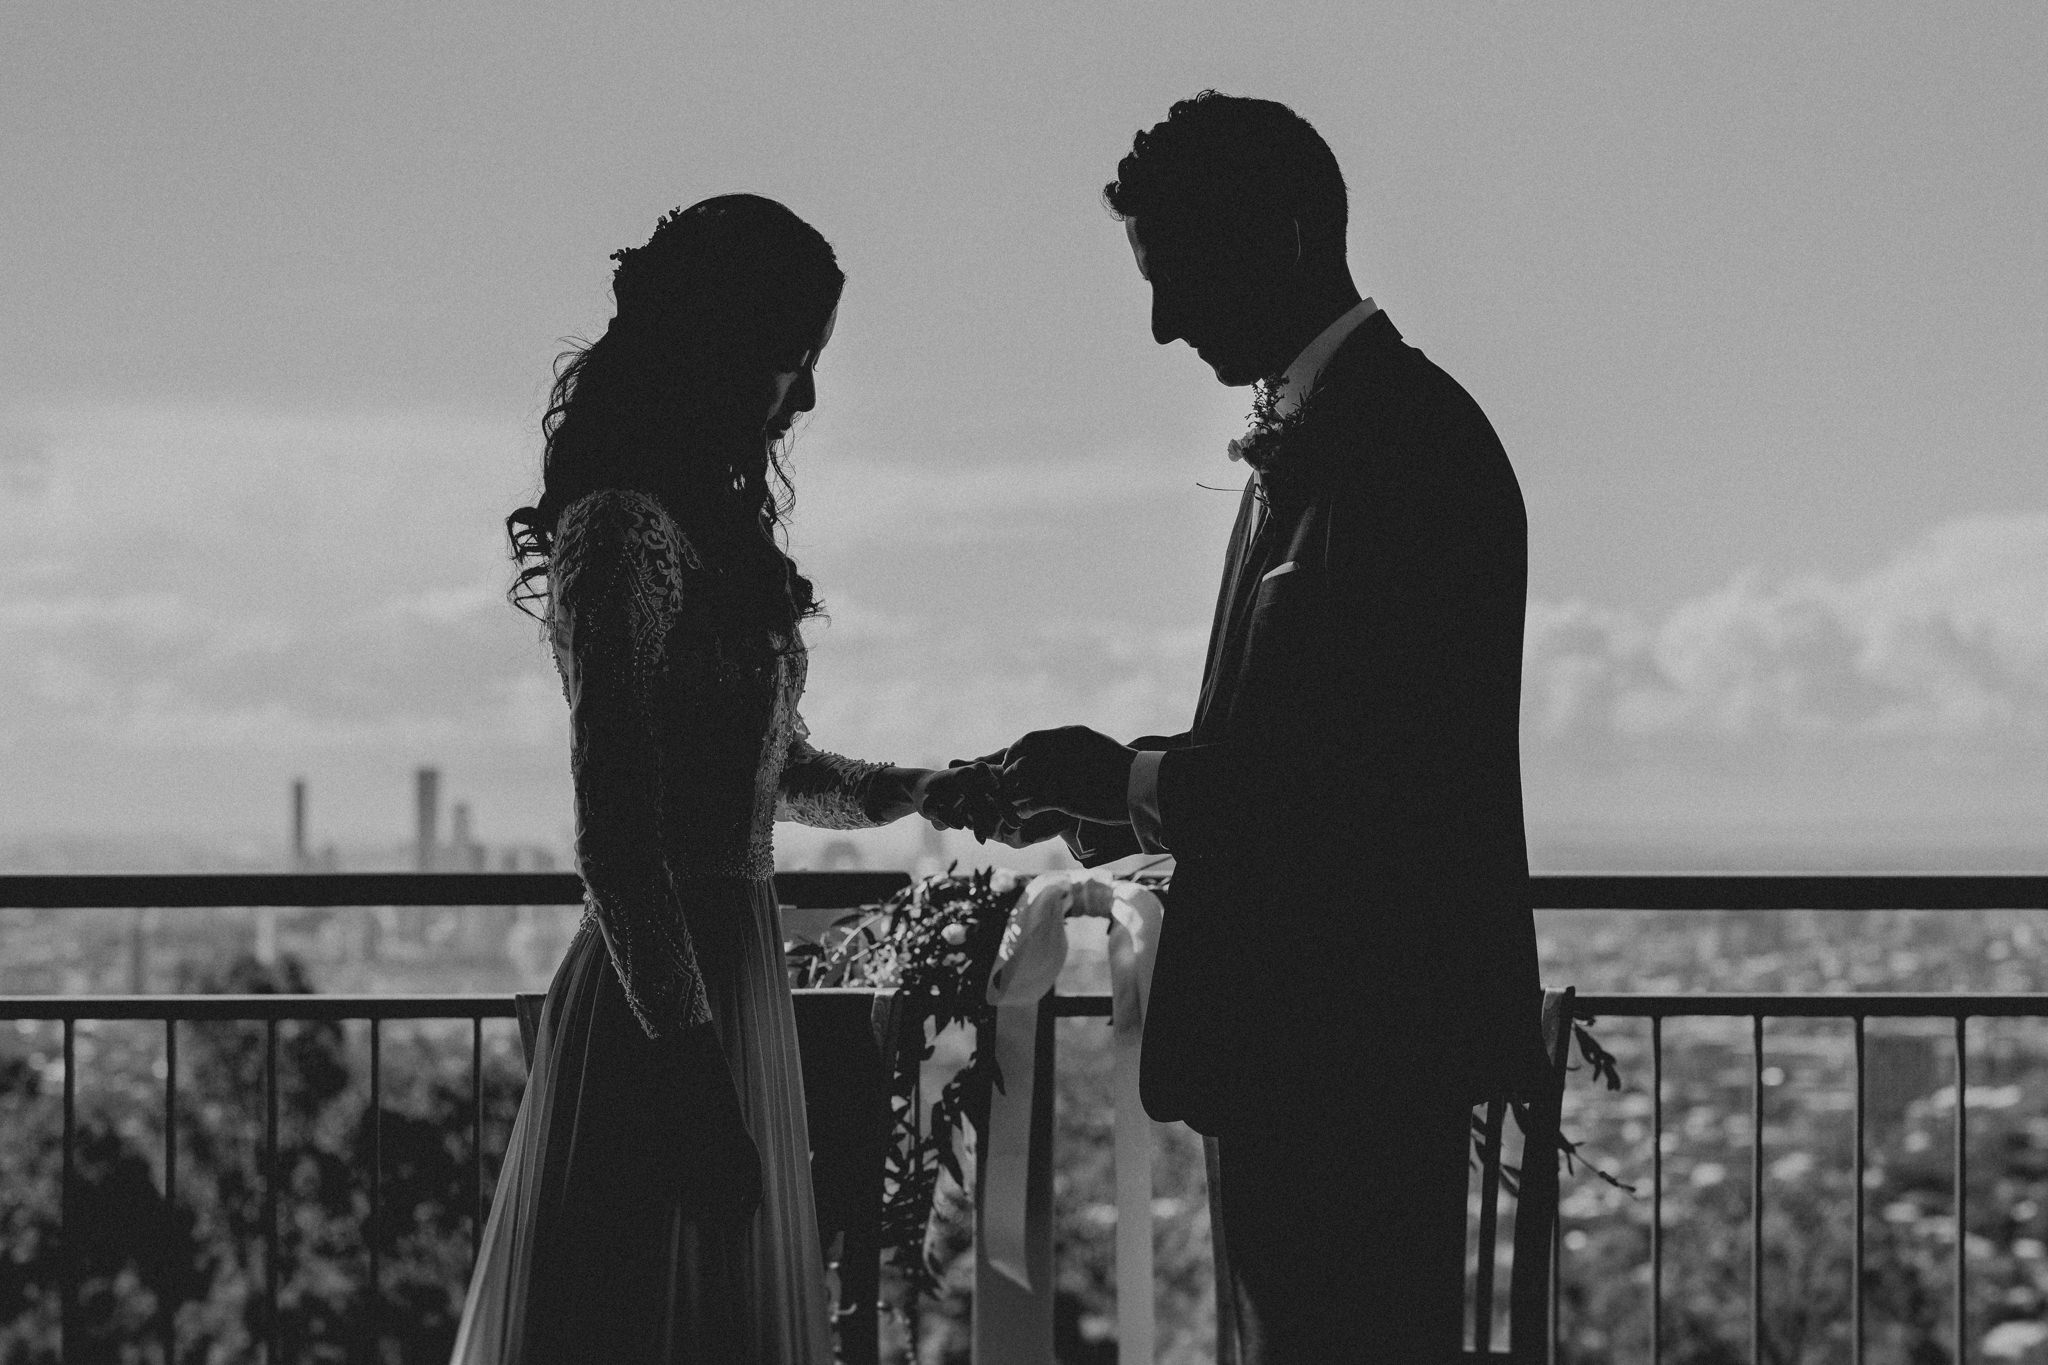 A silhouette of a couple marrying on a balcony overlooking Brisbane City